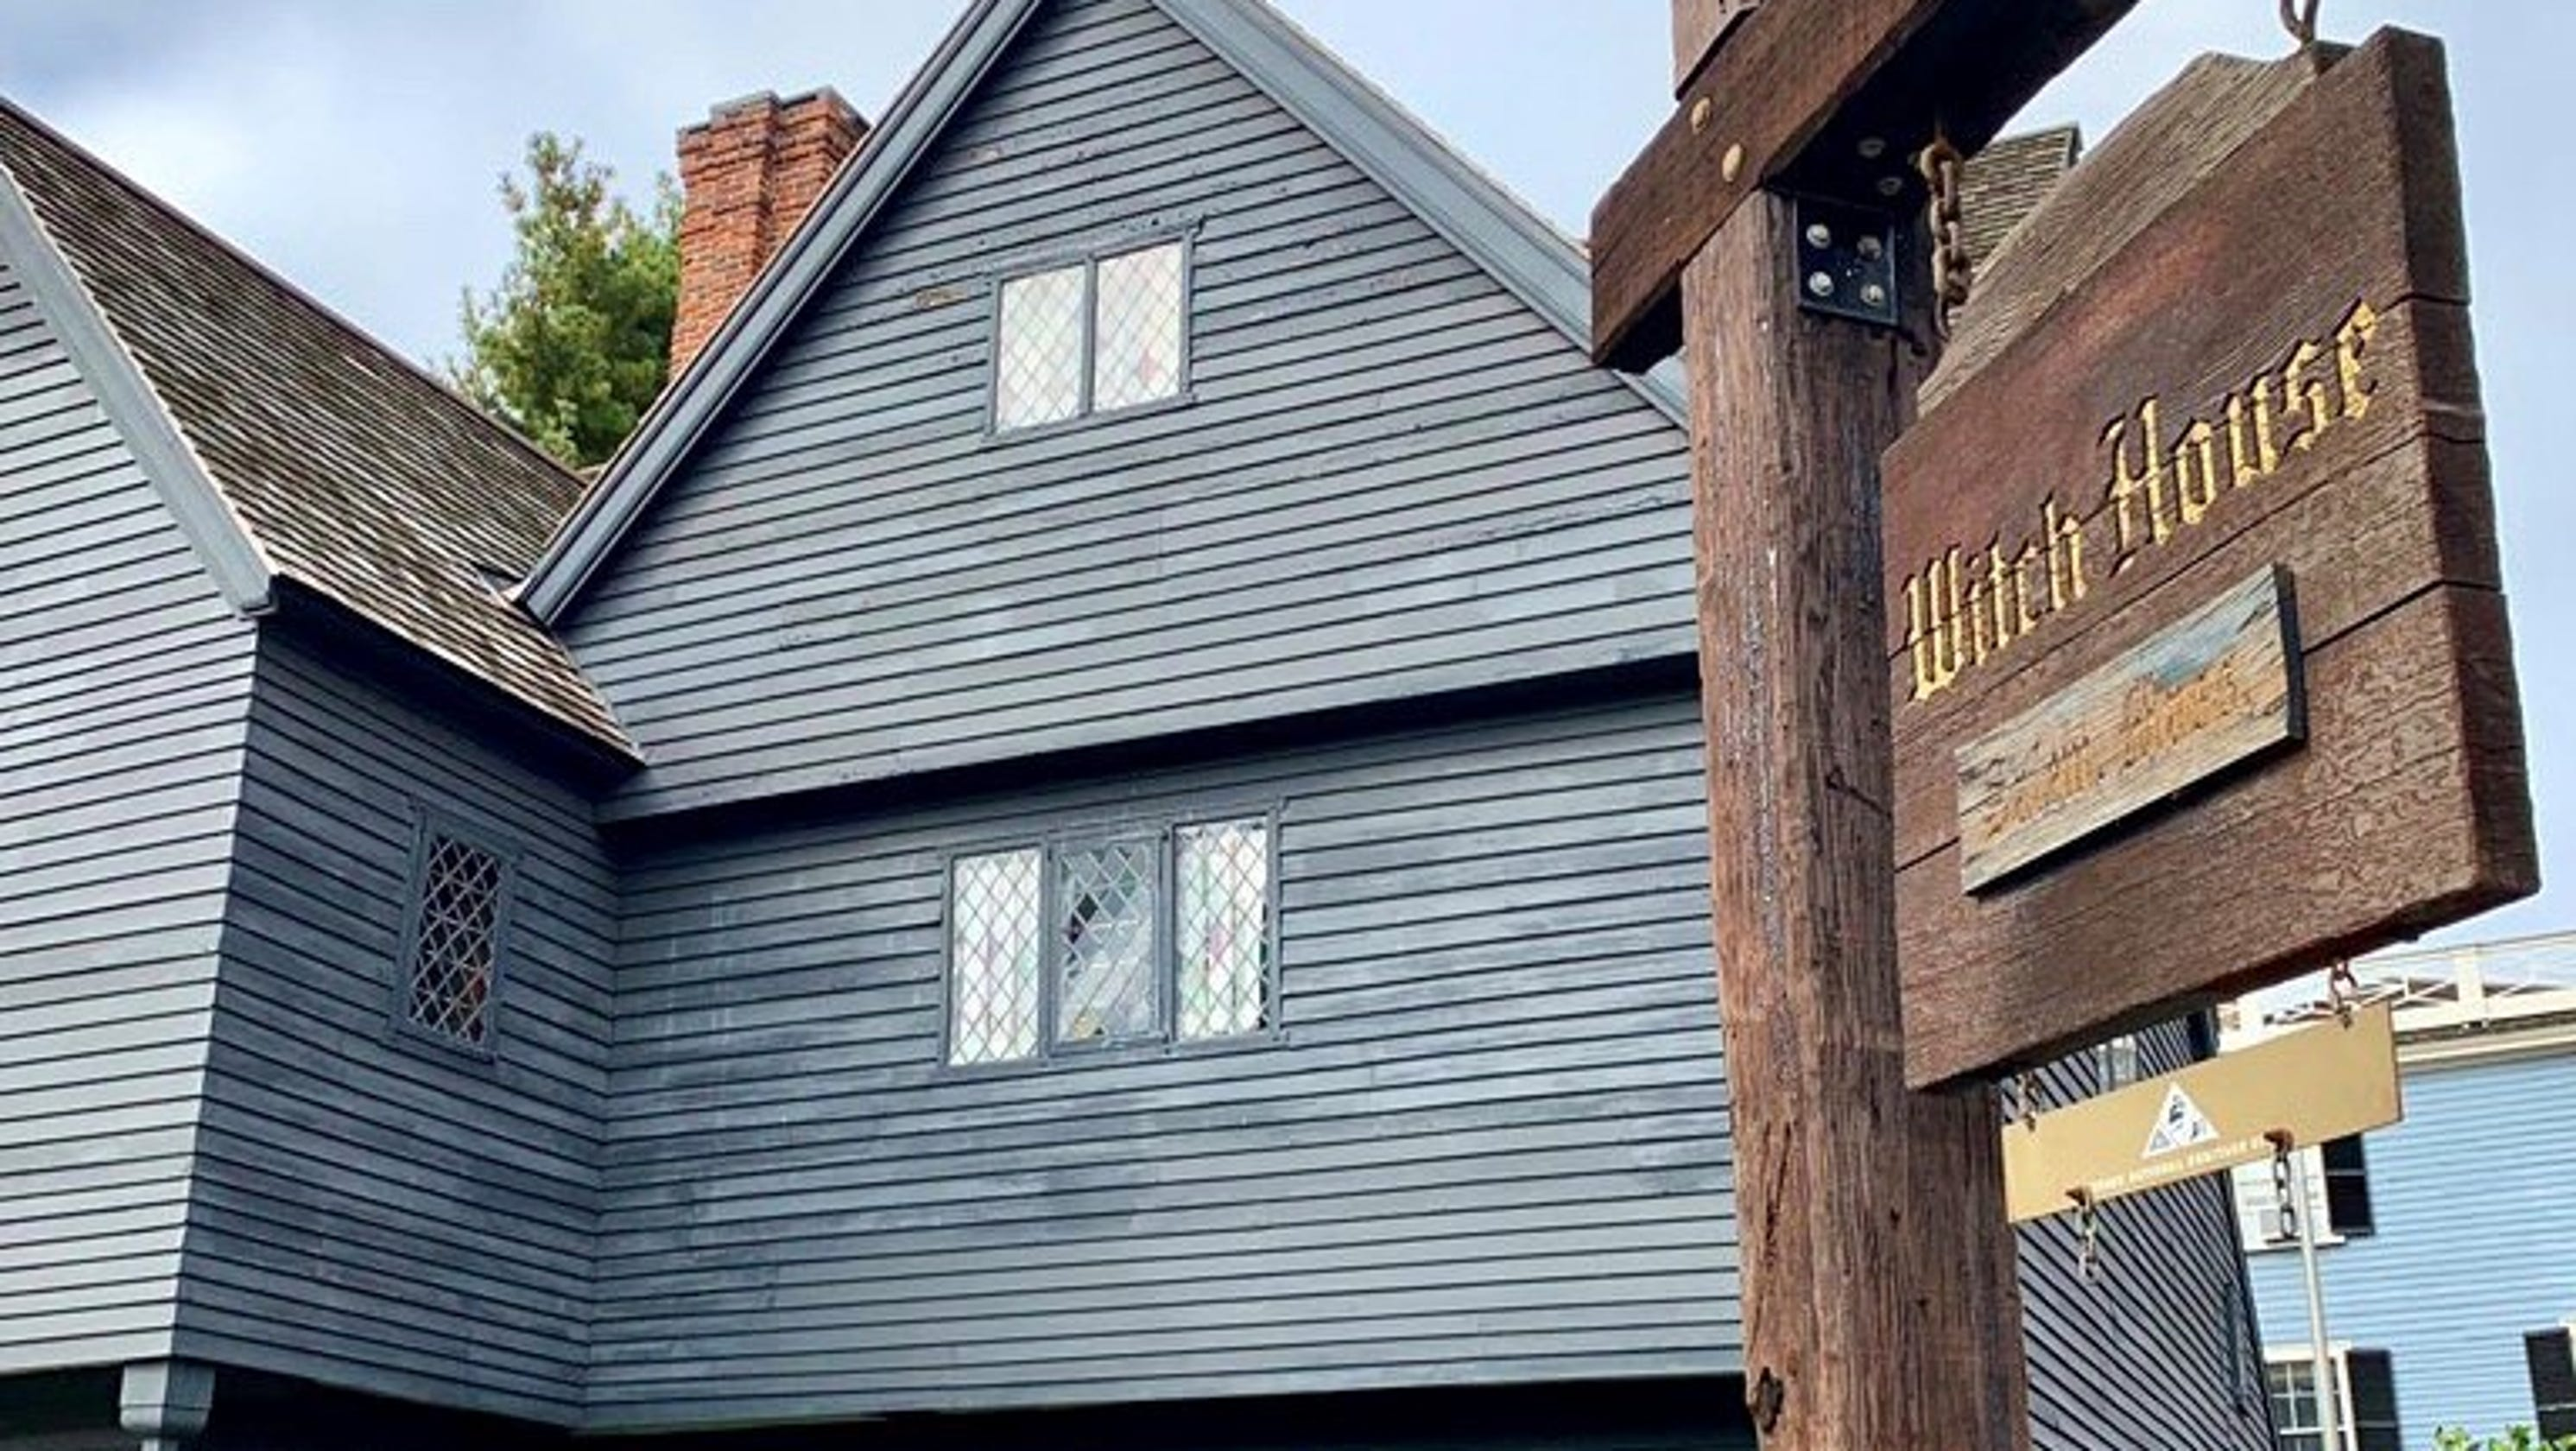 The witching hour: Witchcraft is alive and well in Salem, the 'Witch City'